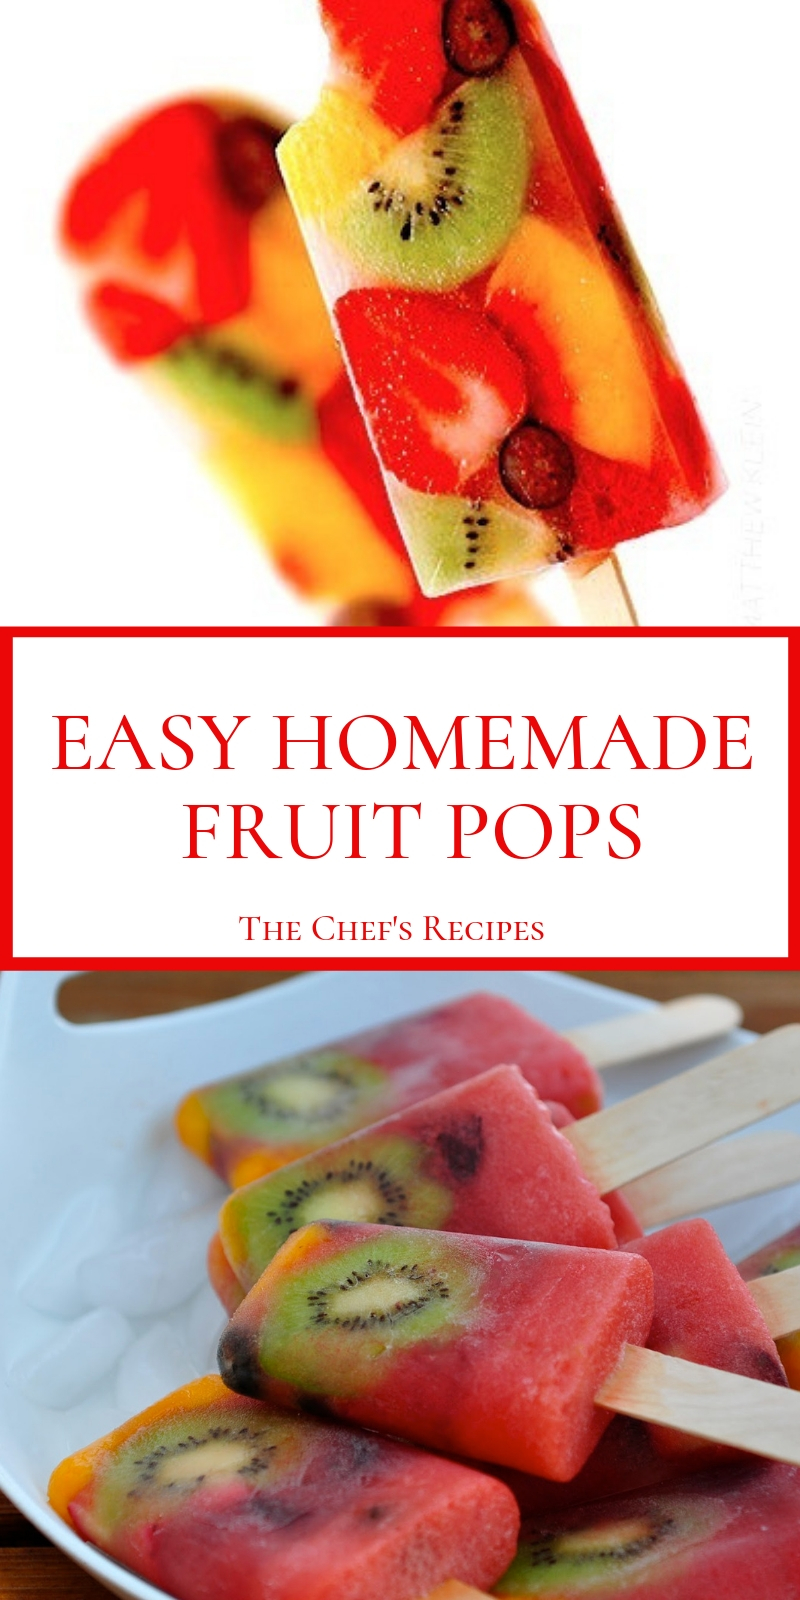 EASY HOMEMADE FRUIT POPS